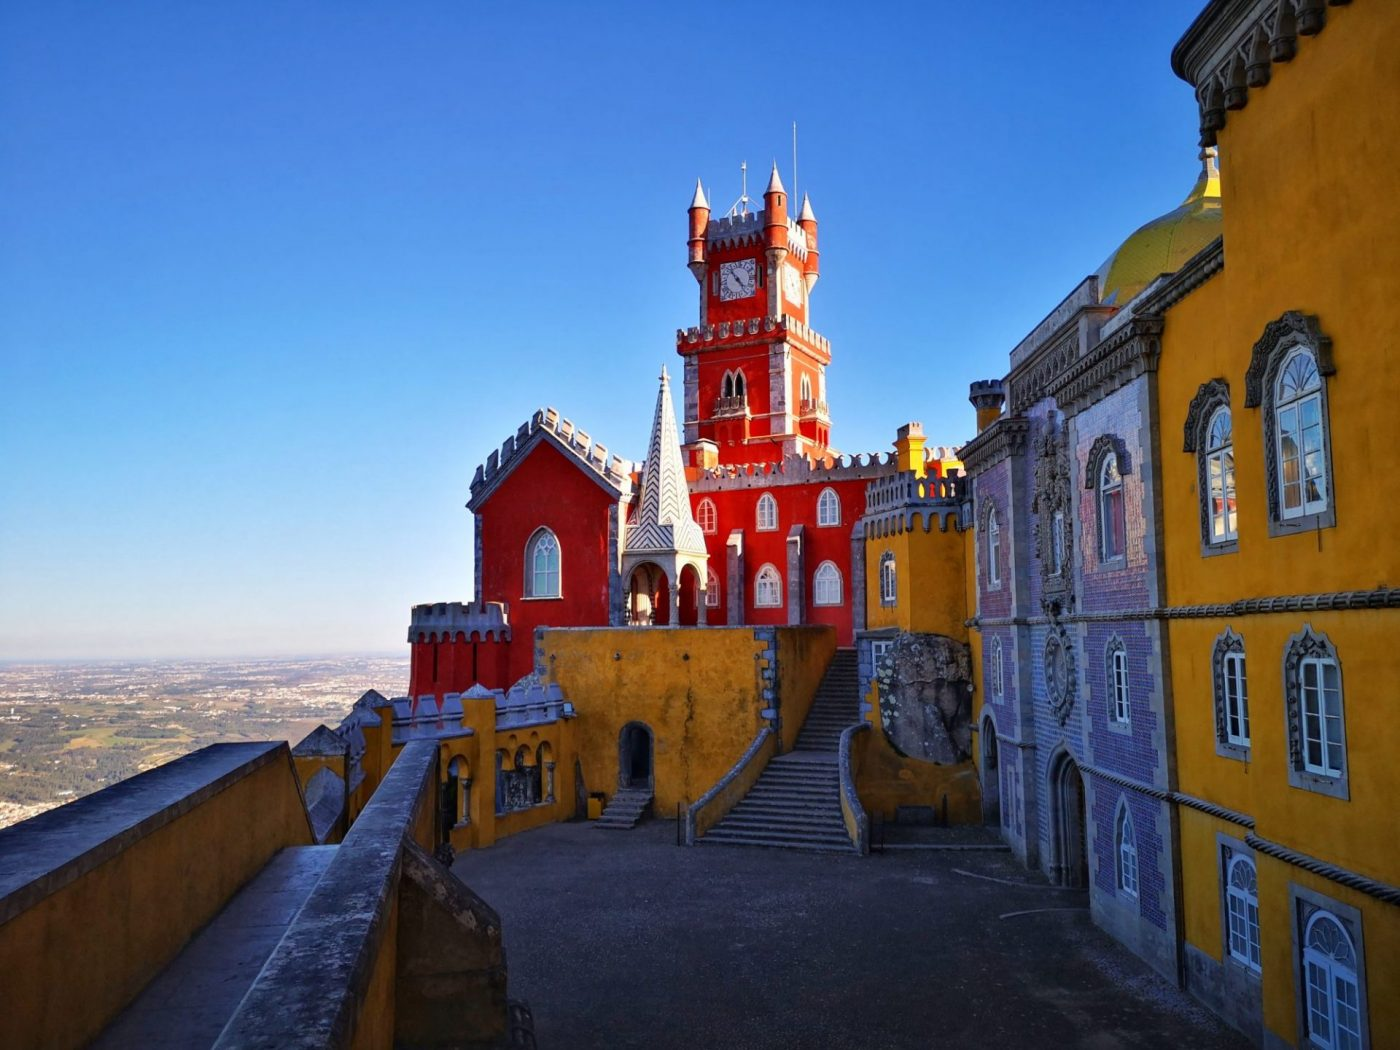 The Best Views of Pena Palace & Gardens in Sintra, Portugal